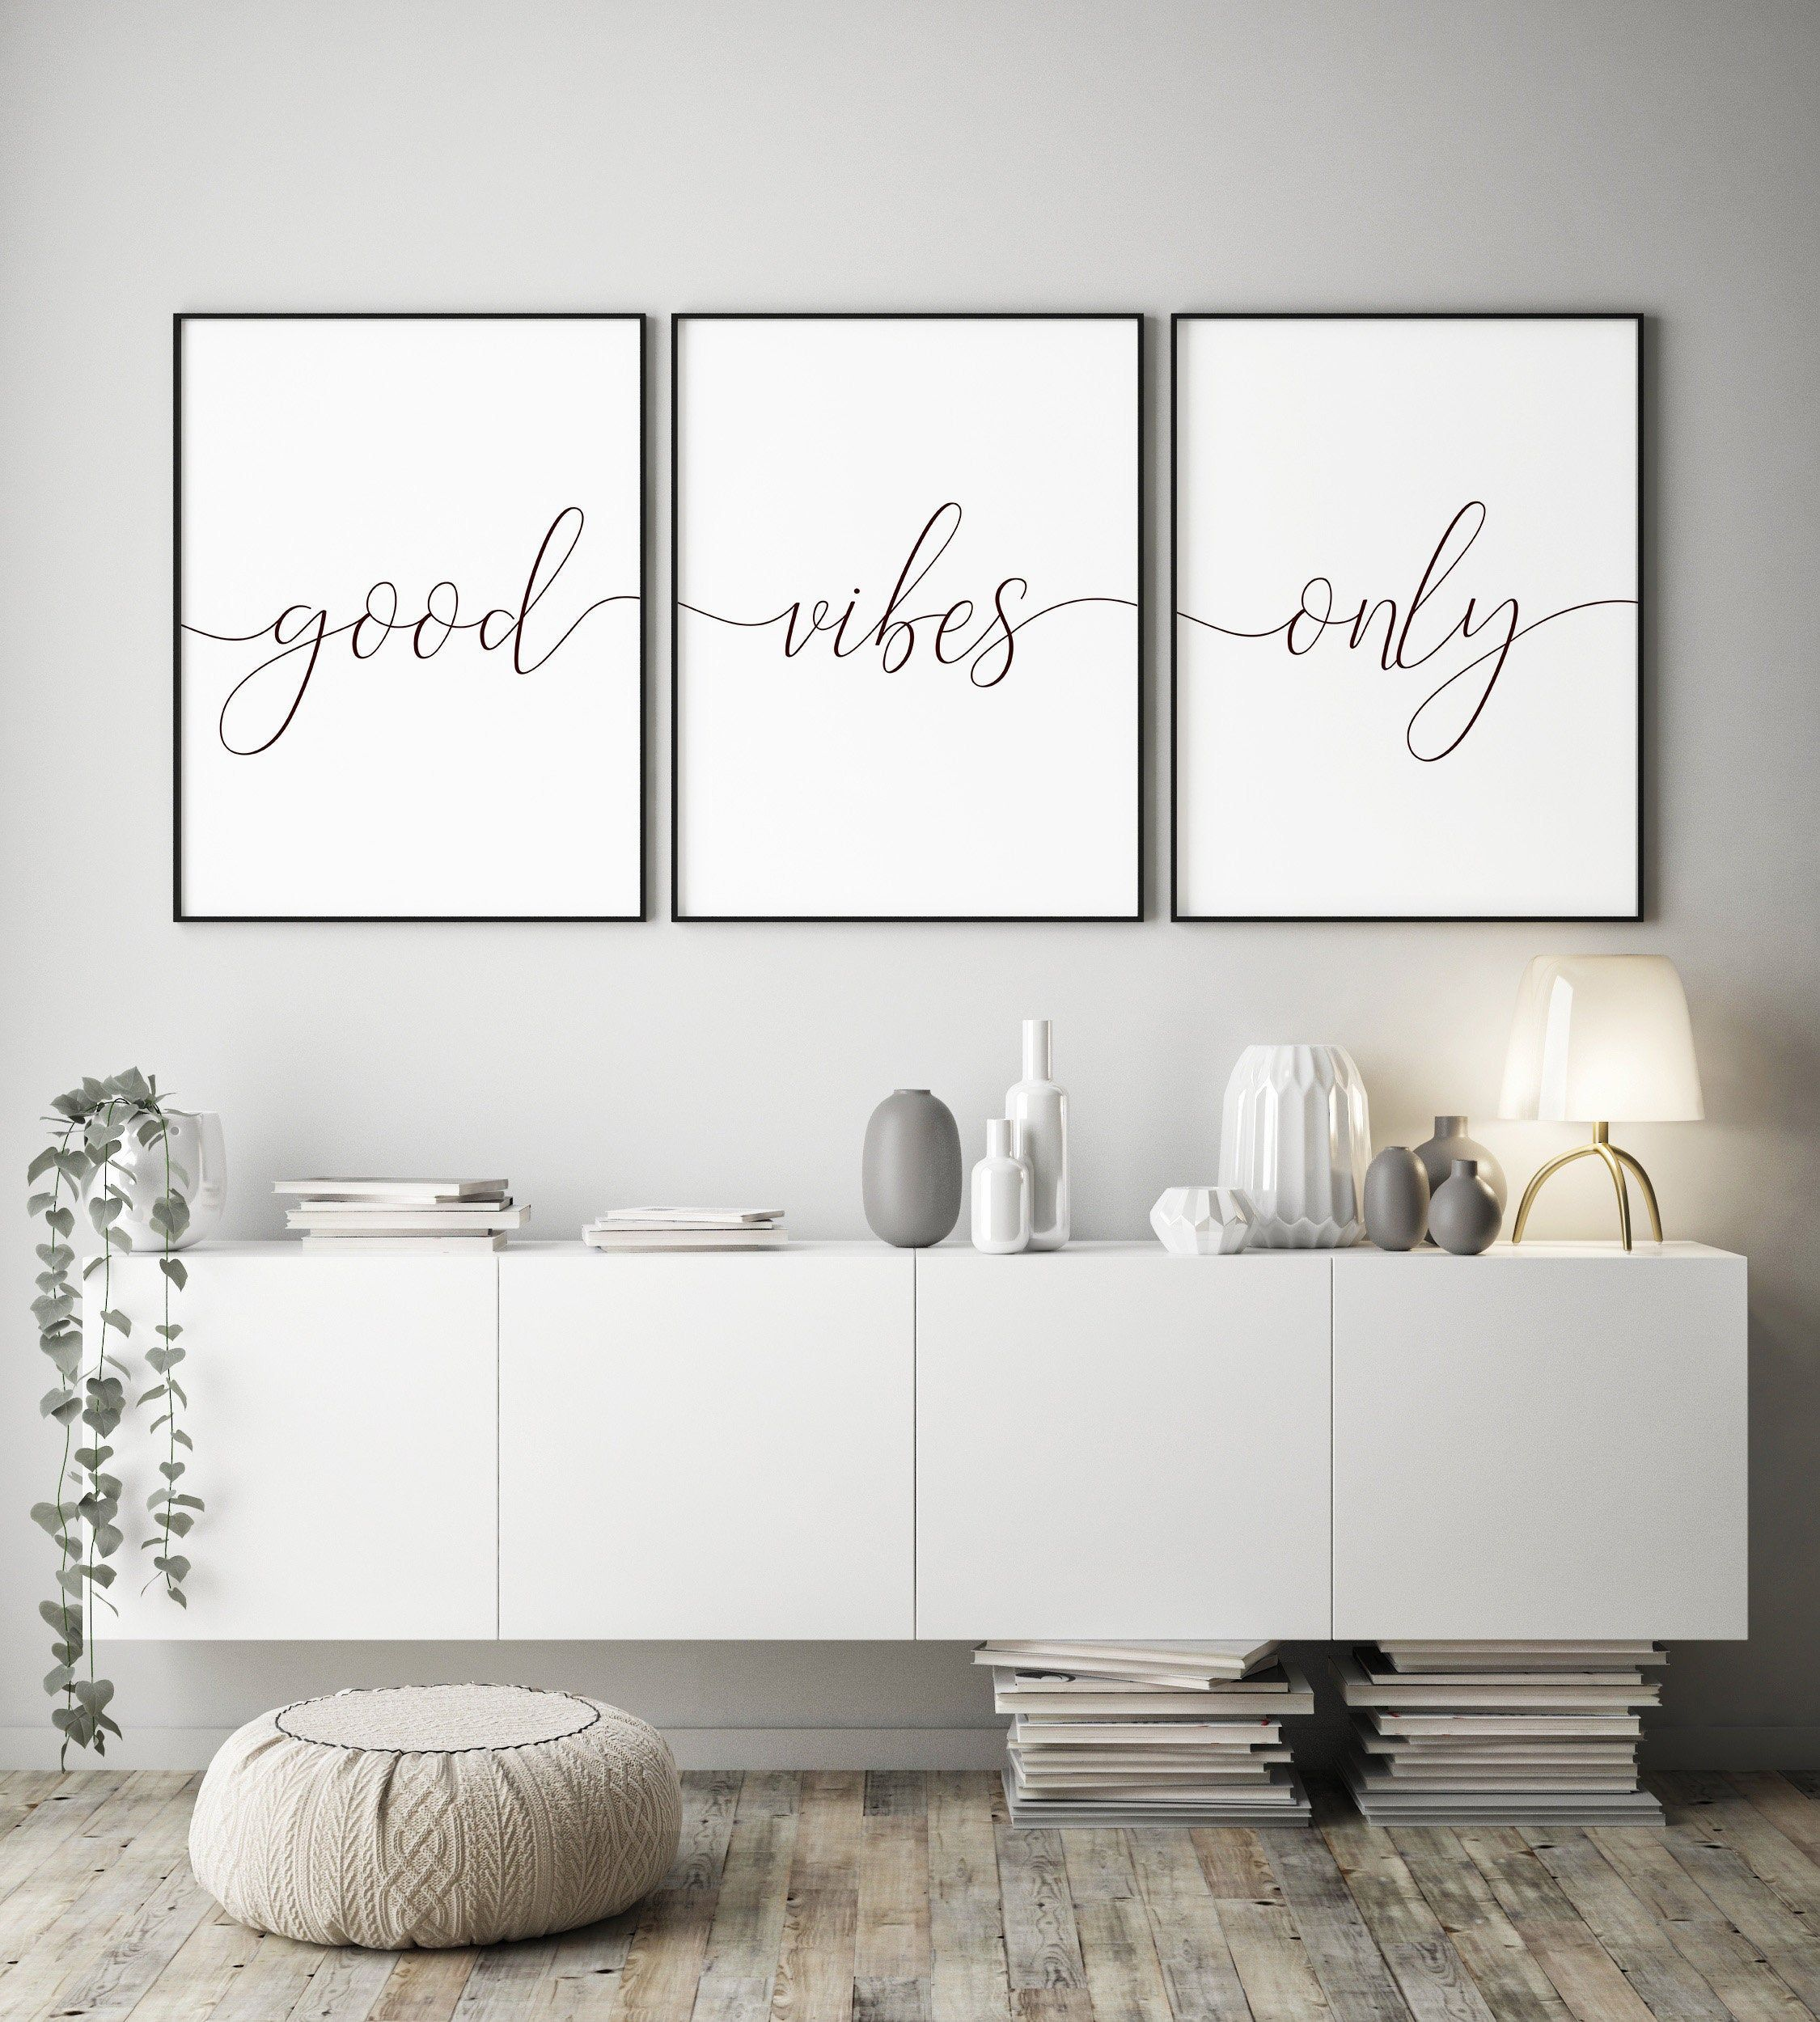 Good Vibes Only Wall Artset Of 3 Printsgood Vibes Only Etsy Wall Art Living Room Lets Stay Home Christian Wall Decor